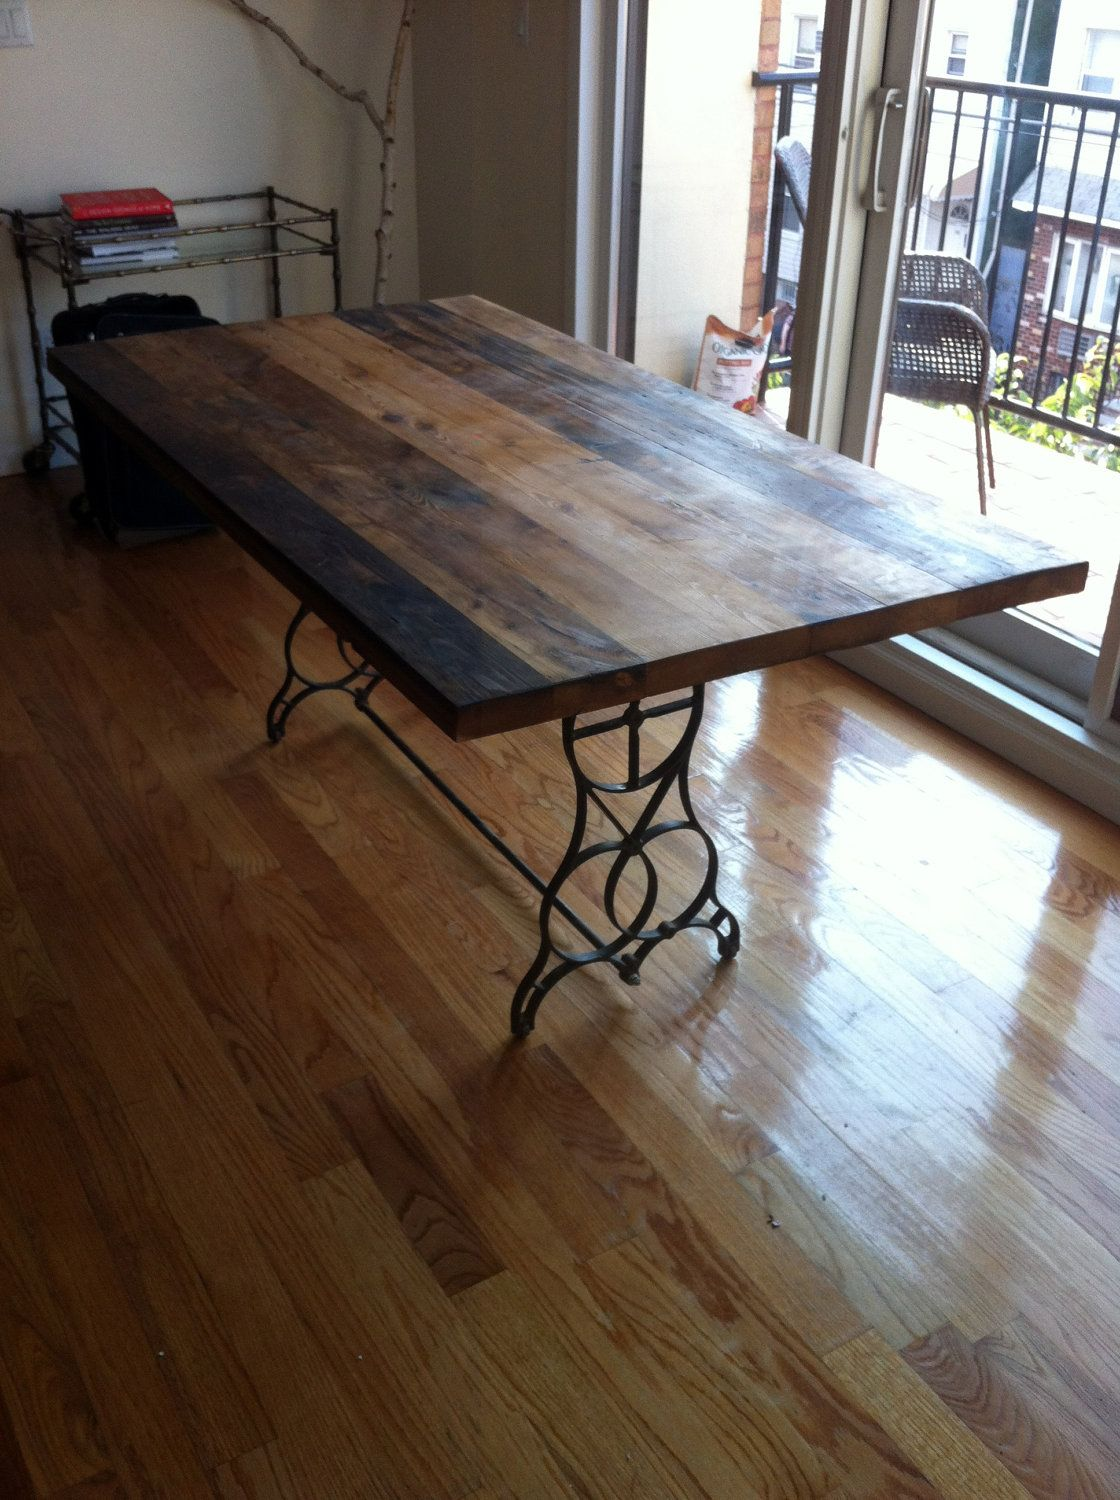 Reclaimed Wood Table Top With Sewing Machine Legs Altho I D Make A Trestle